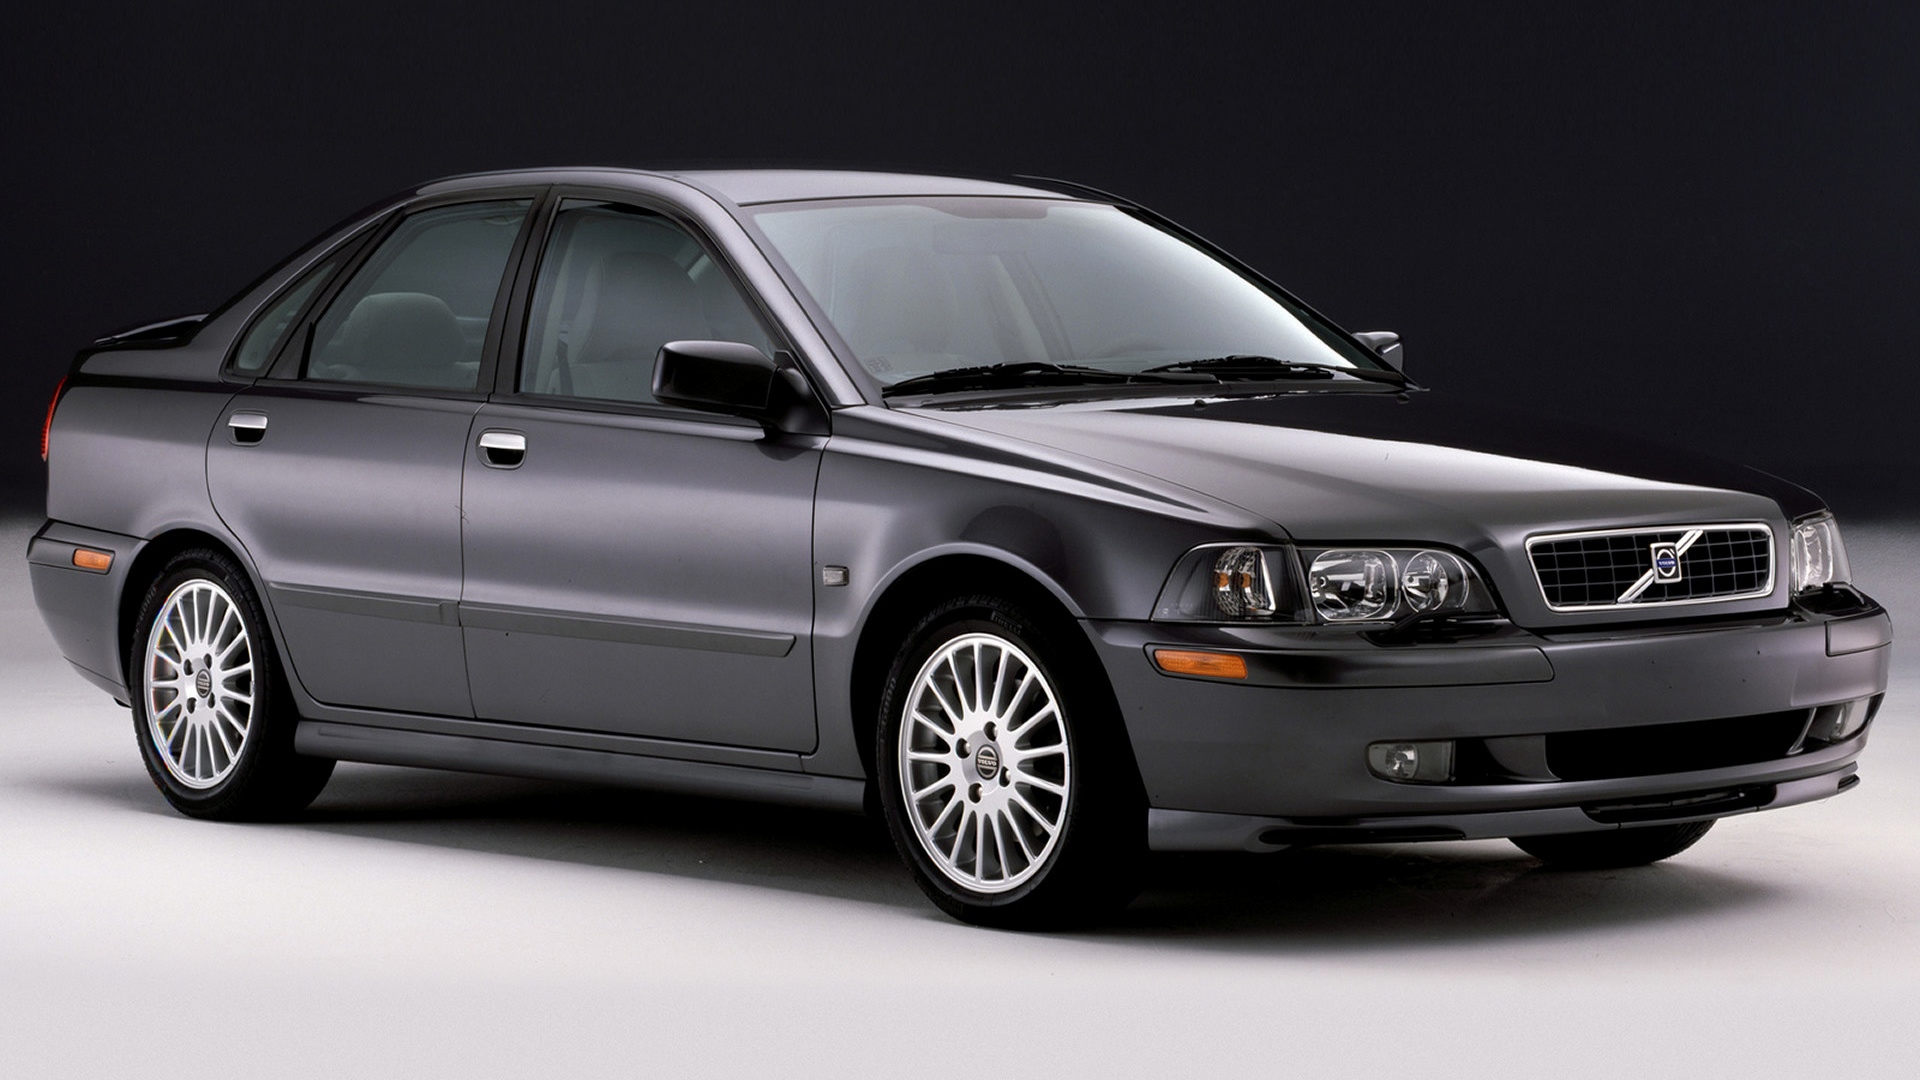 car wallpapers volvo s40 - photo #5